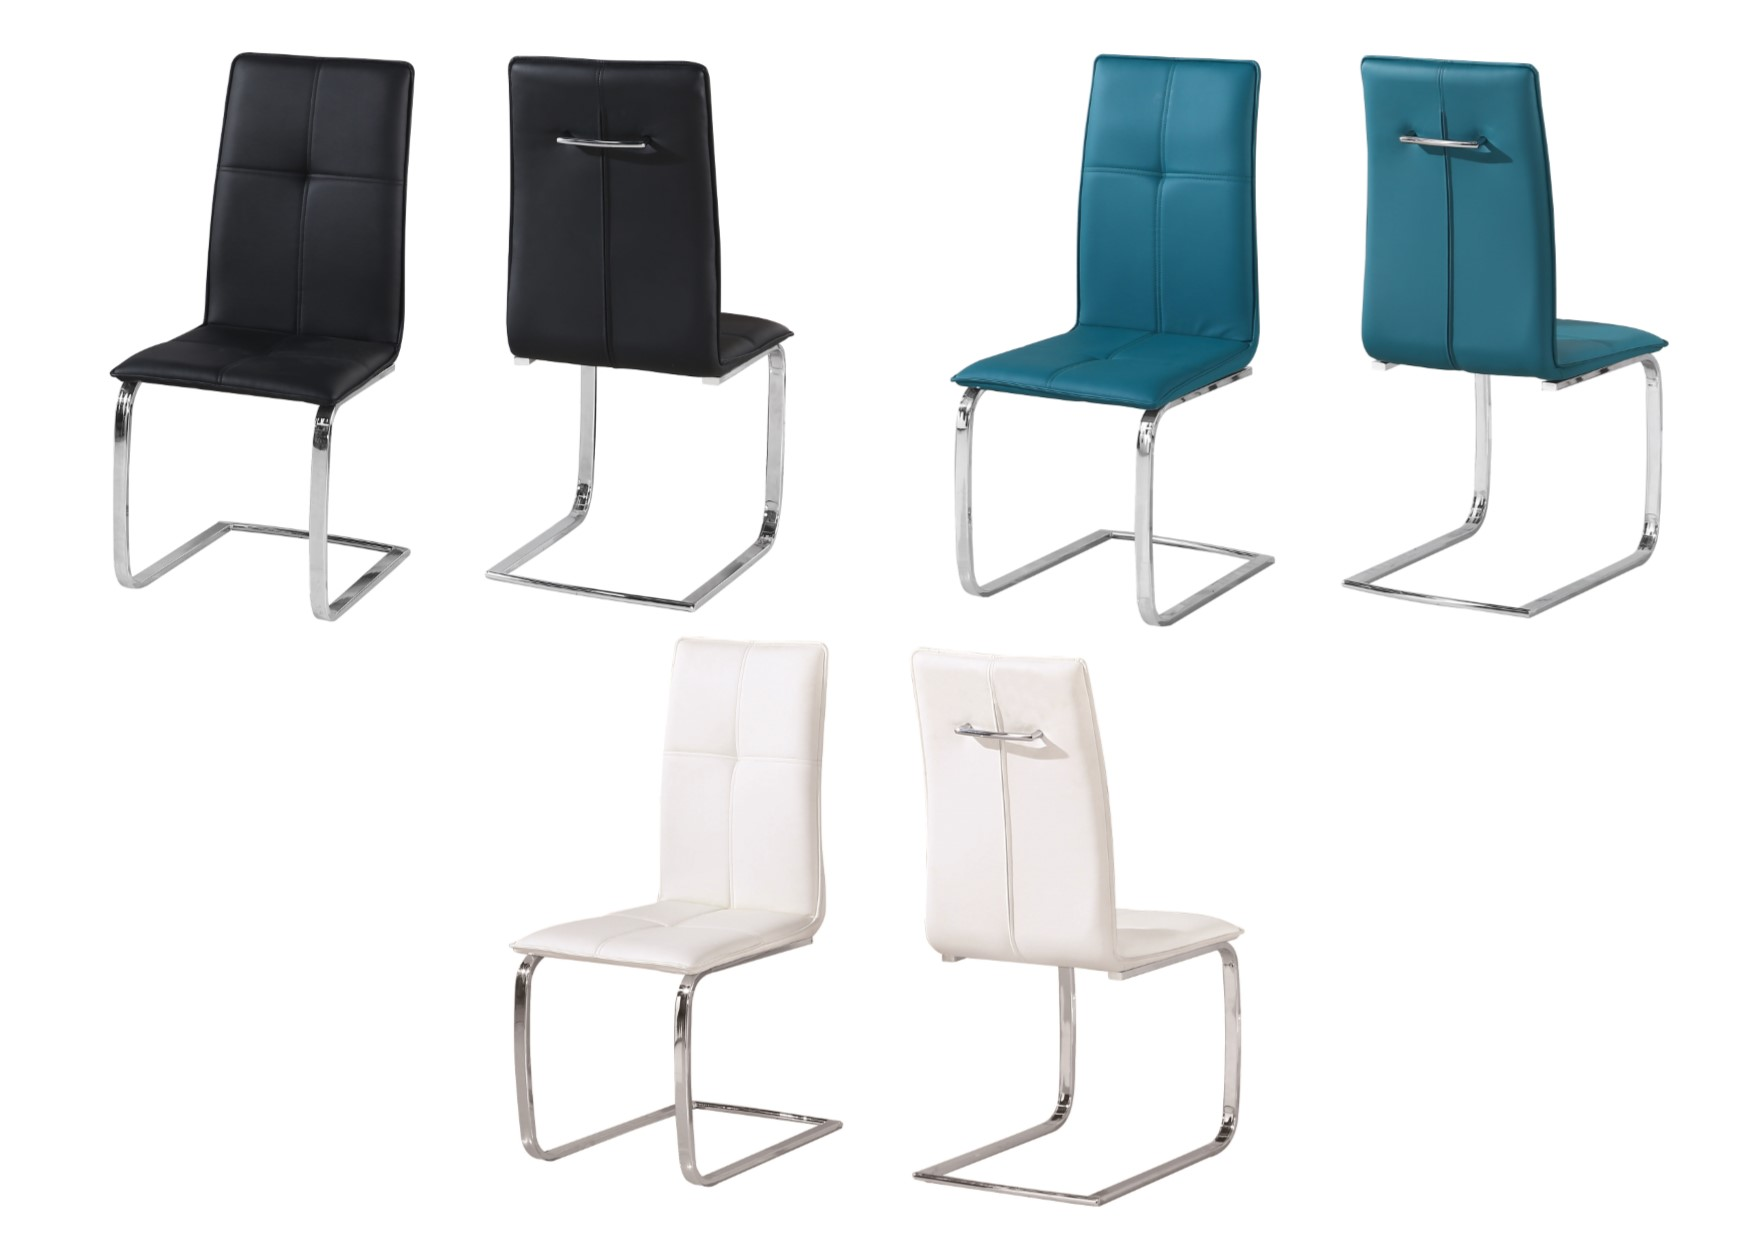 Lpd Opus Faux Leather Chrome Dining Chairs Black Teal White X2